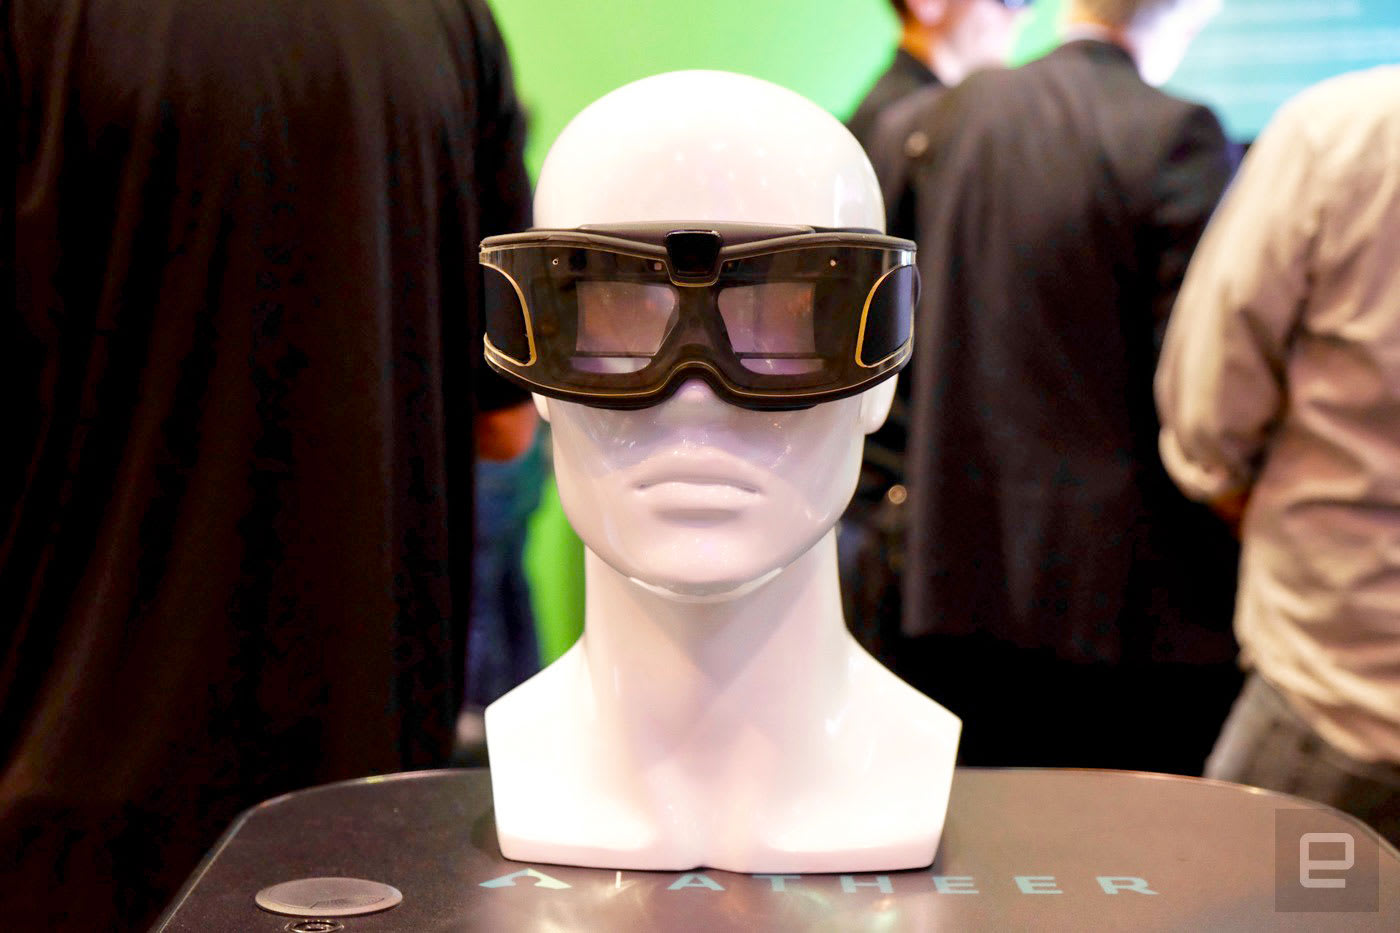 90c2f17e8fe0 Augmented reality hardware is still way ahead of its software